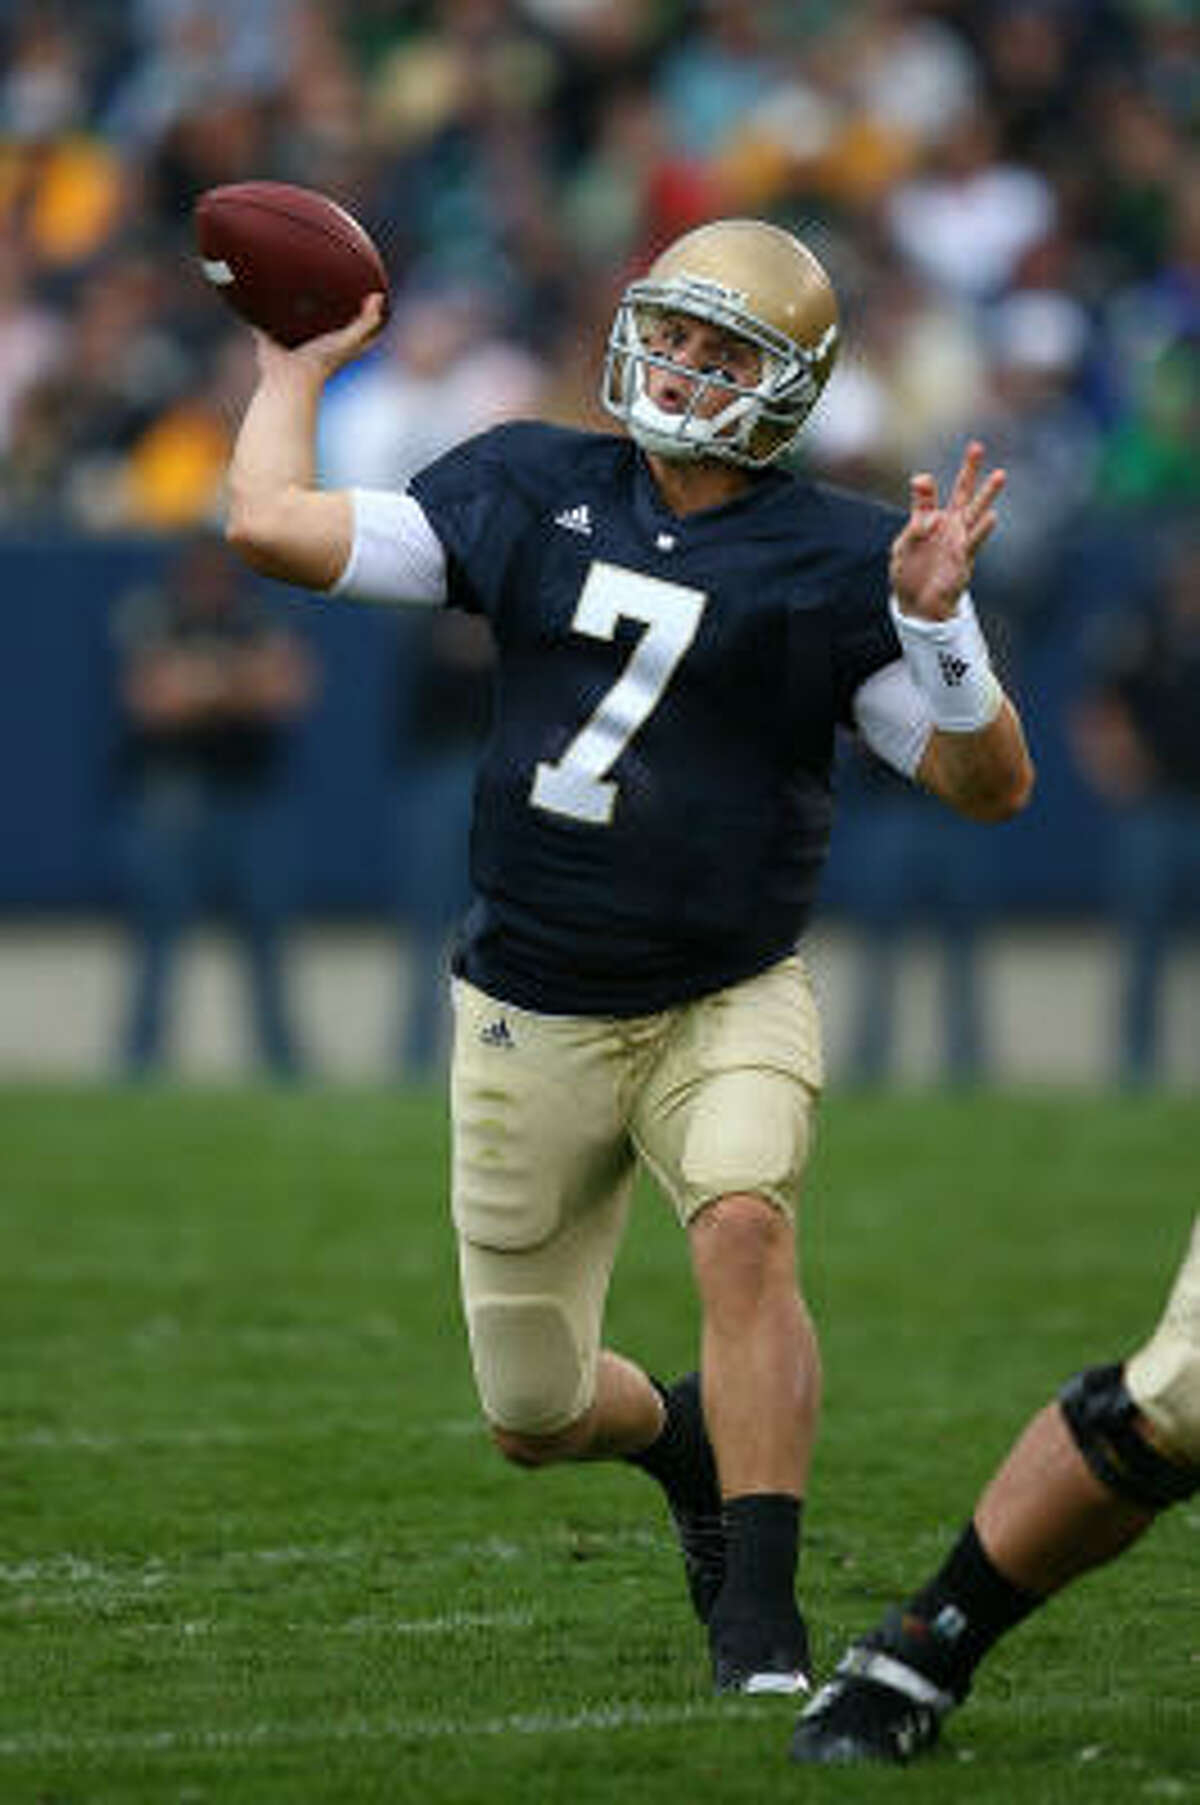 Jimmy Clausen, 6-2 1⁄5, 222, 4.73, Notre Dame Some scouts think this underclassman could have a free fall in the first round like Aaron Rodgers, who was drafted by Green Bay and is now one of the league's best quarterbacks. There are questions about Clausen's cockiness, meaning some see him as self-centered and egotistical. Others see him as a confident leader. He's tried to shoot down those negative evaluations. He learned a lot under Charlie Weis at Notre Dame. He has good mechanics. He needs to improve accuracy on sideline routes. He throws a soft deep ball. He moves well, too. Should go in the first round.